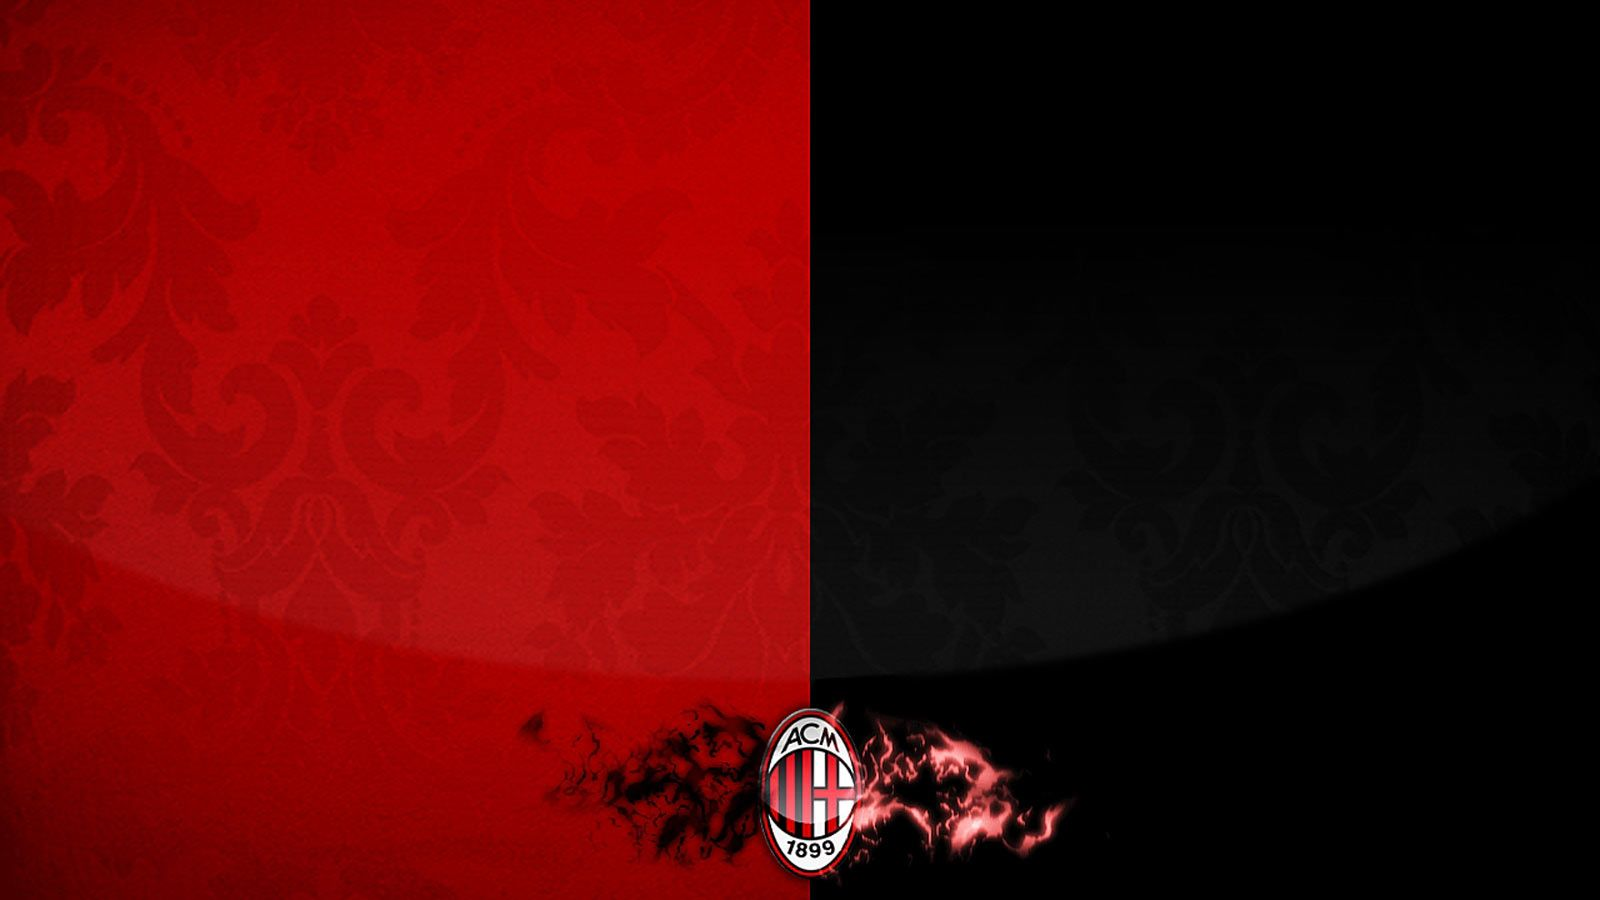 Wallpaper Ac Milan Wallpaper 2 Gambar